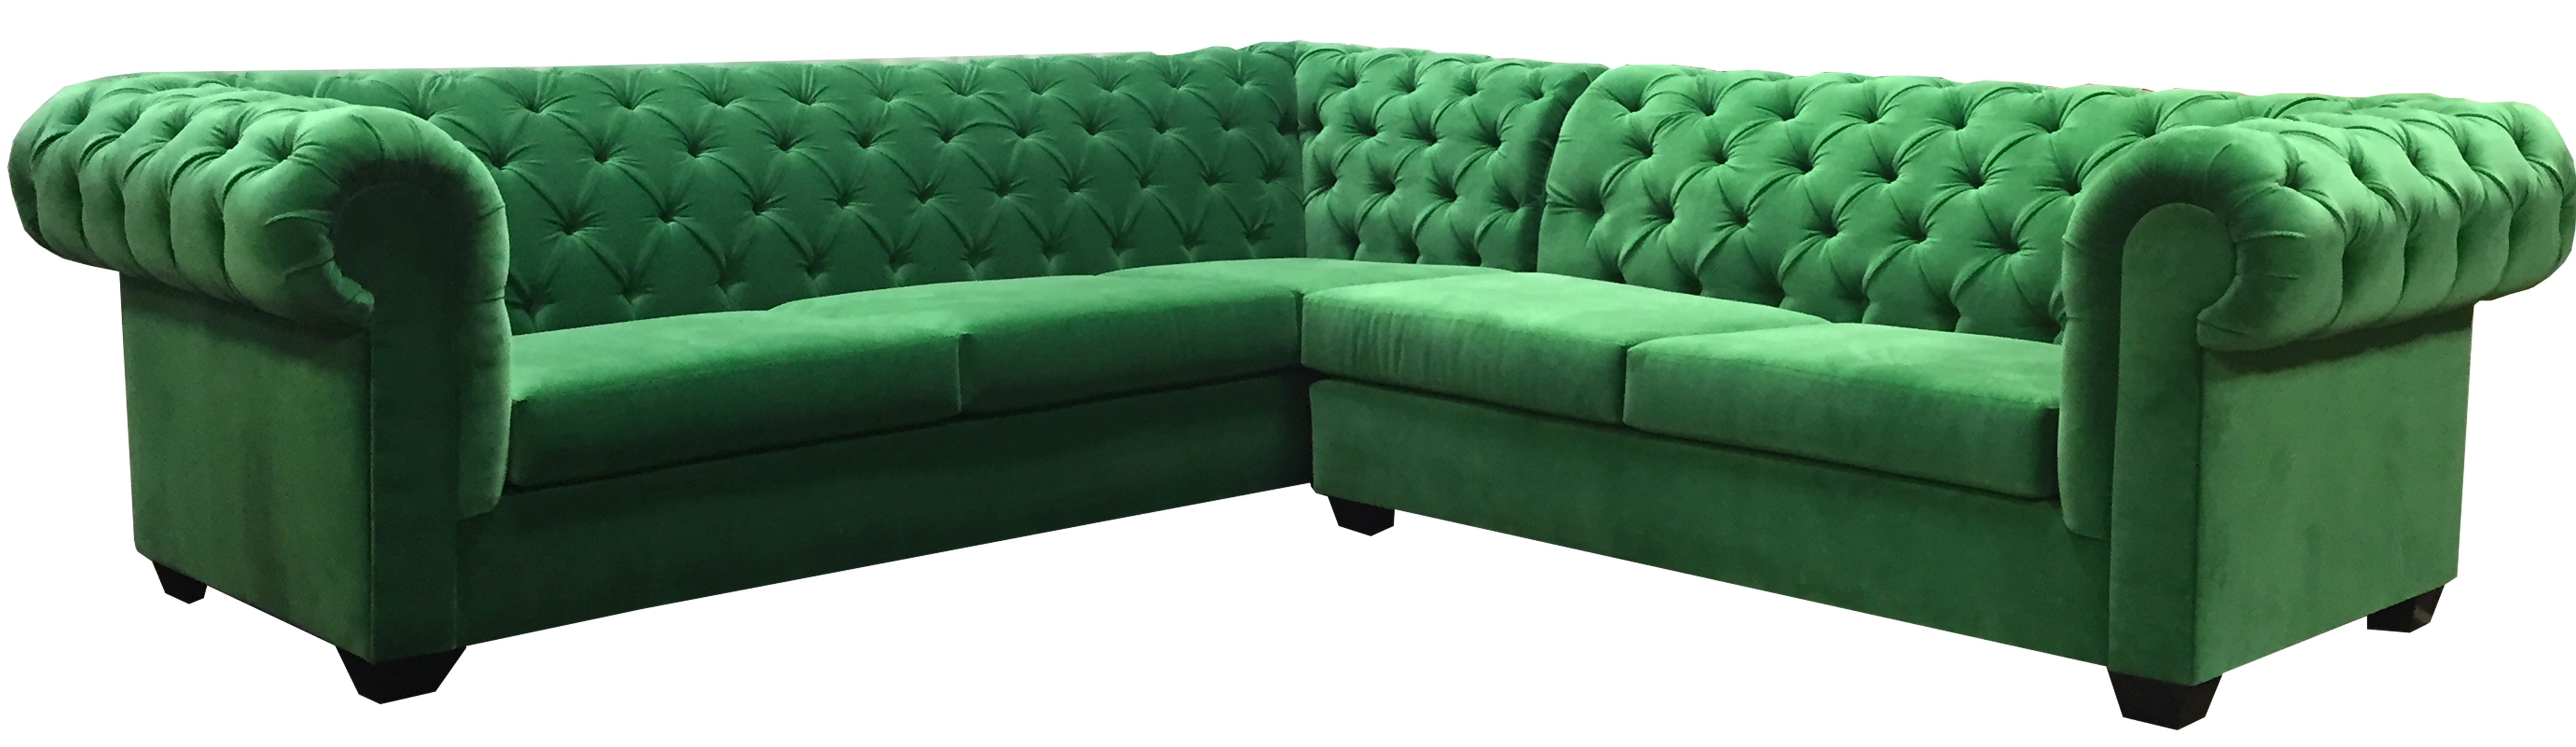 Kelly Green 'l' Sectional - Velvet - Designer8 with Well-known Green Sectional Sofas